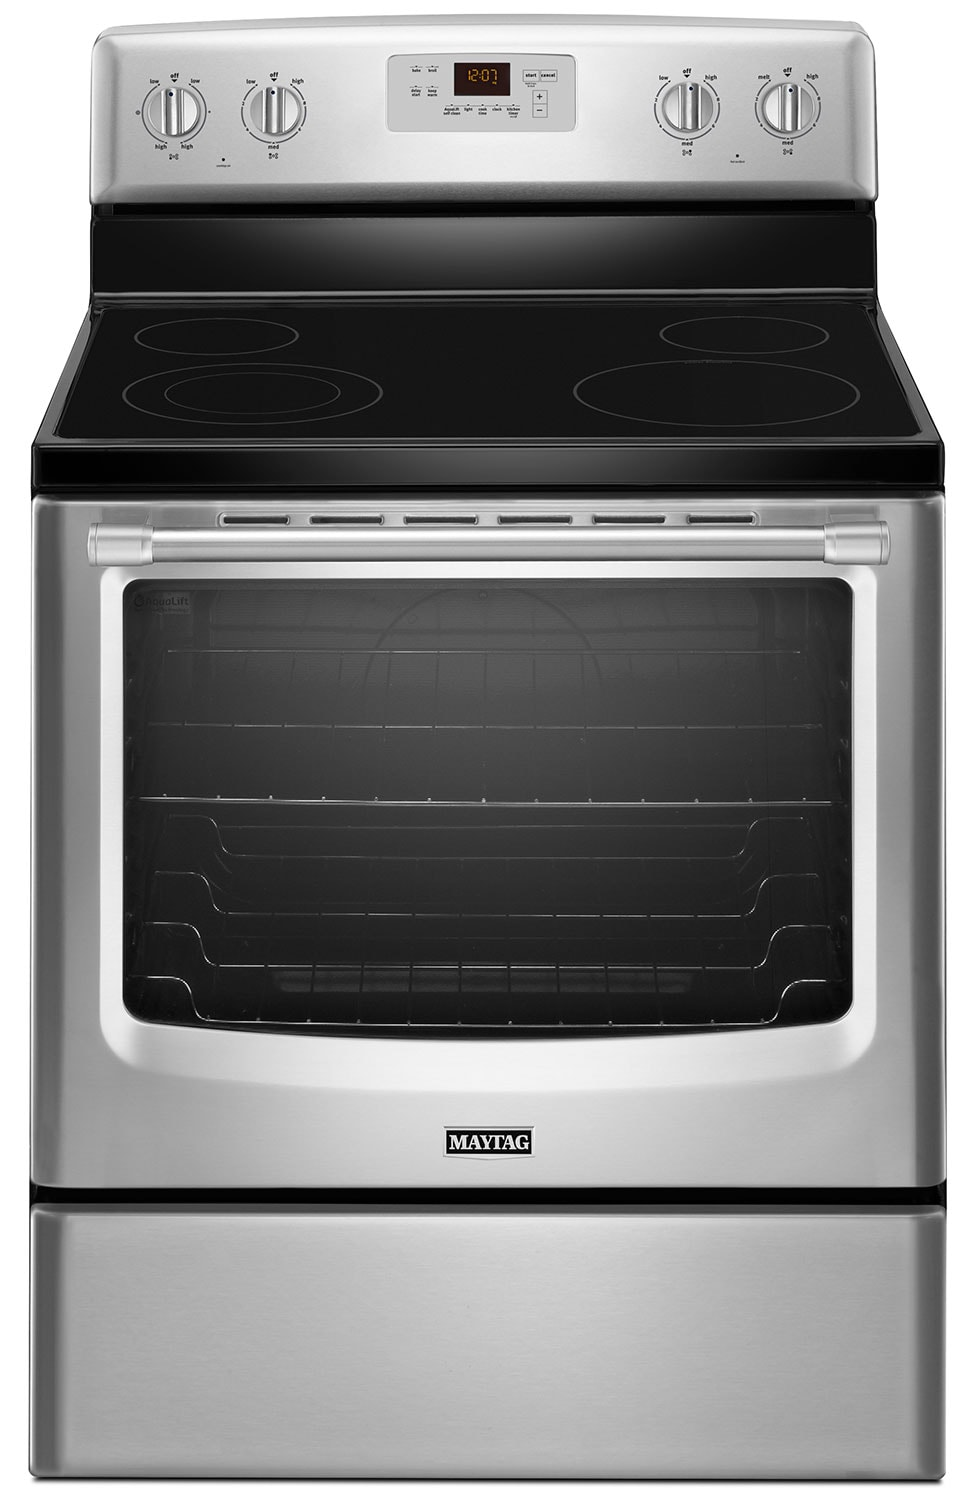 Maytag 6.2 Cu. Ft. Freestanding Electric Range – YMER8600DS